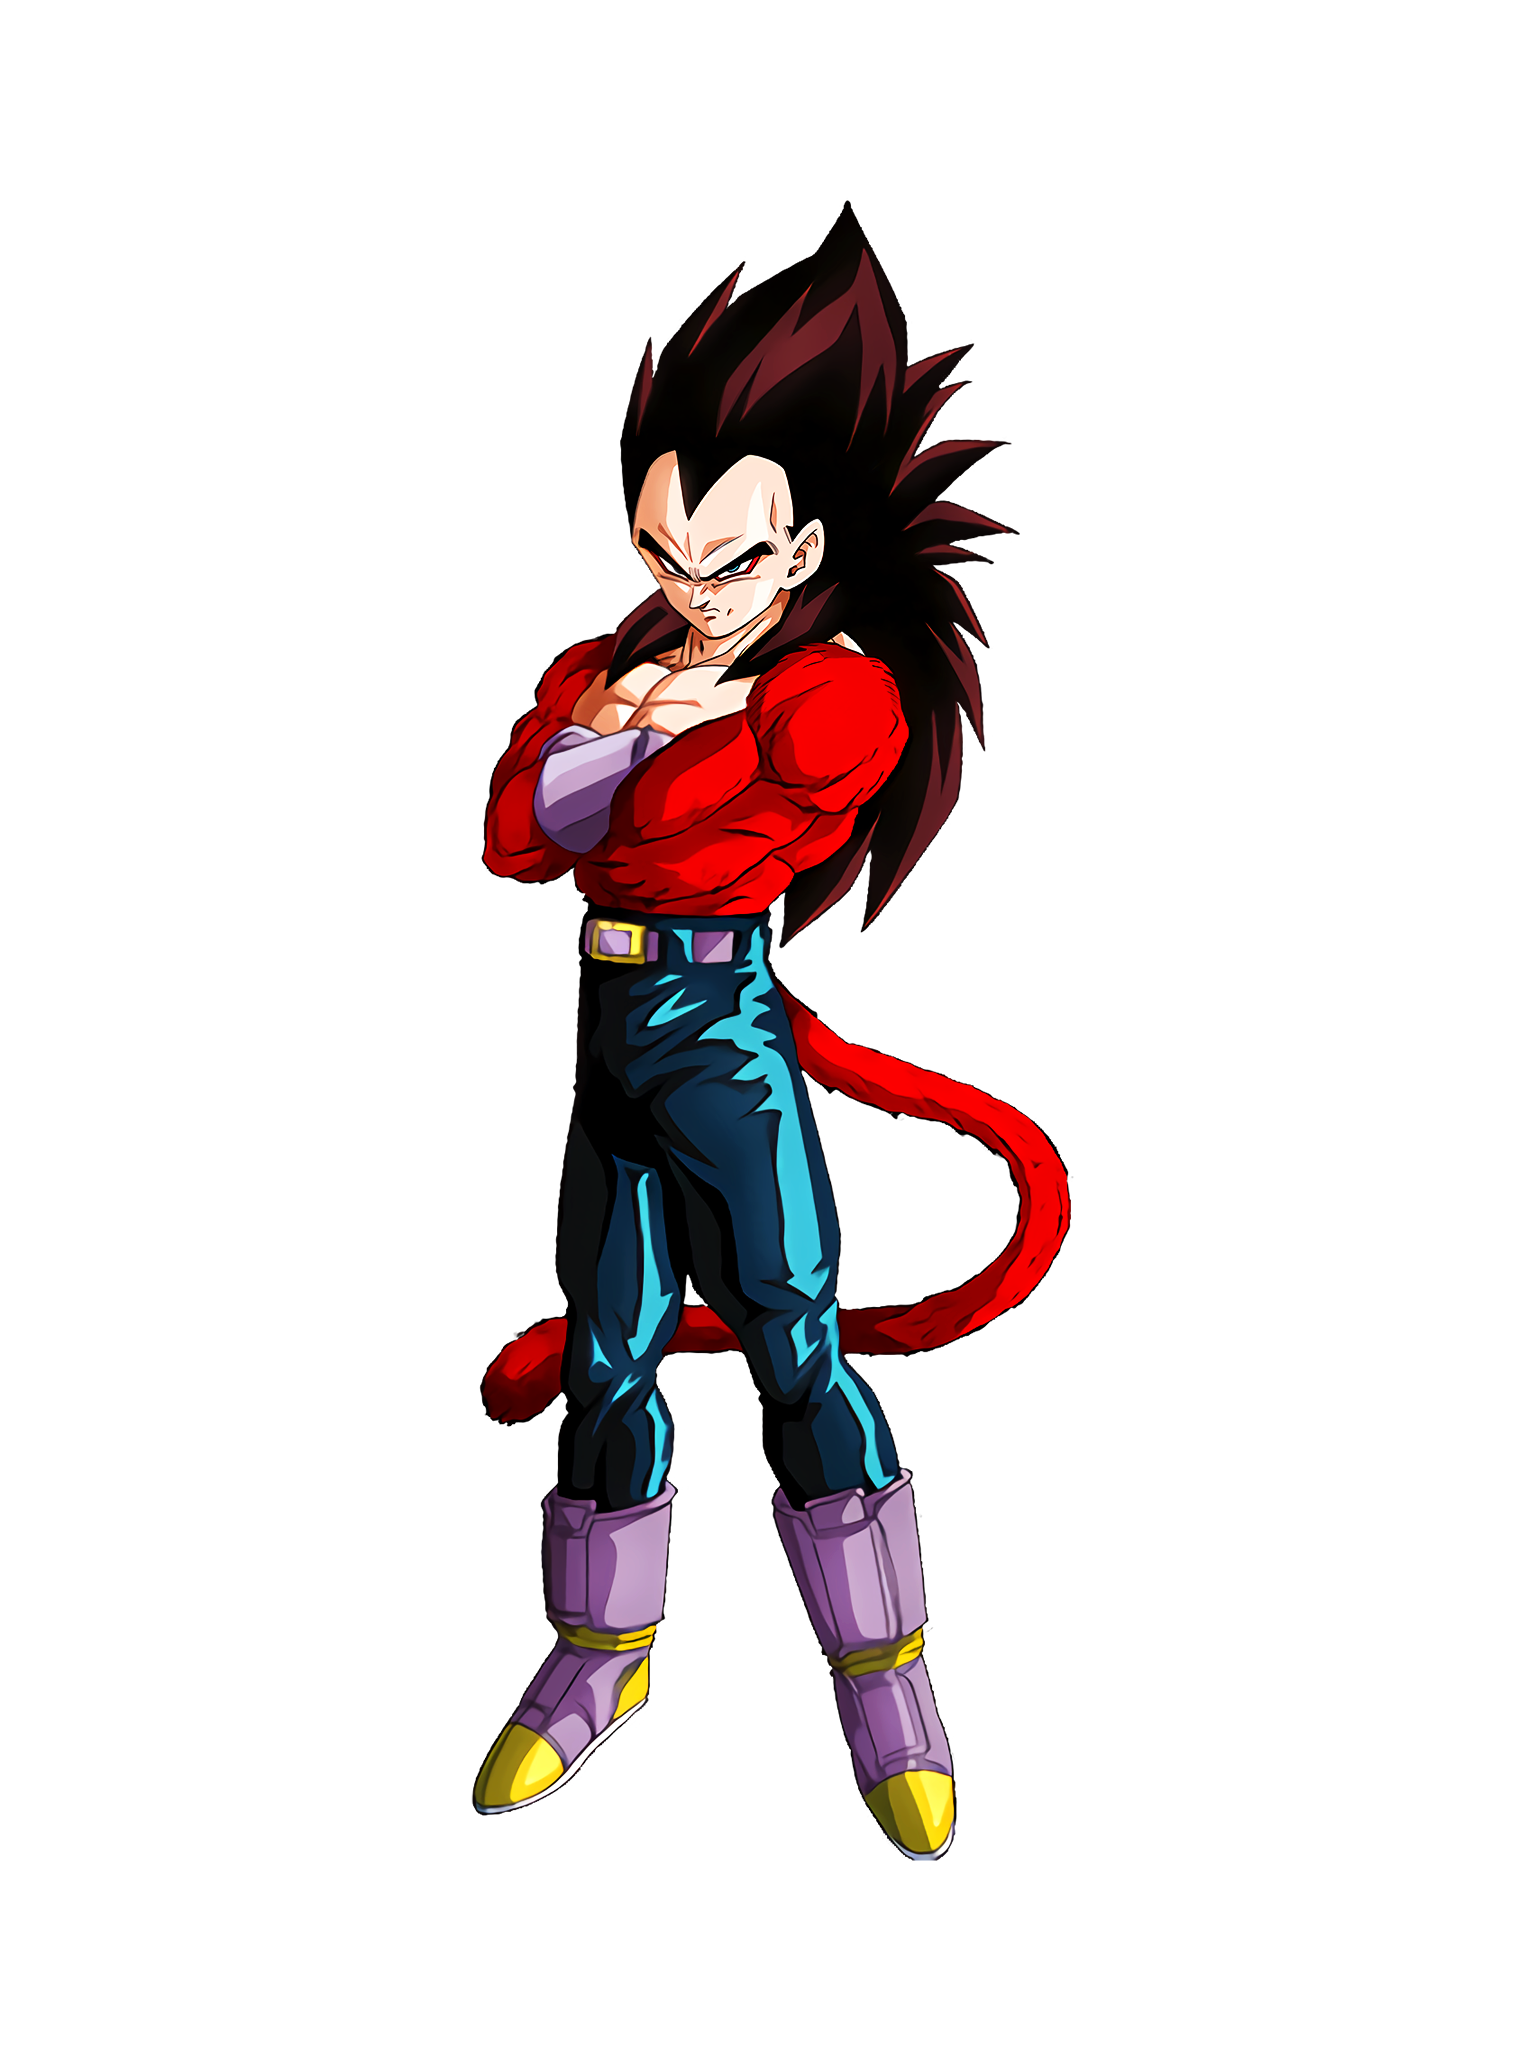 Indomitable Arousal Super Saiyan 4 Vegeta GT Render (Dragon Ball Z Dokkan Battle).png